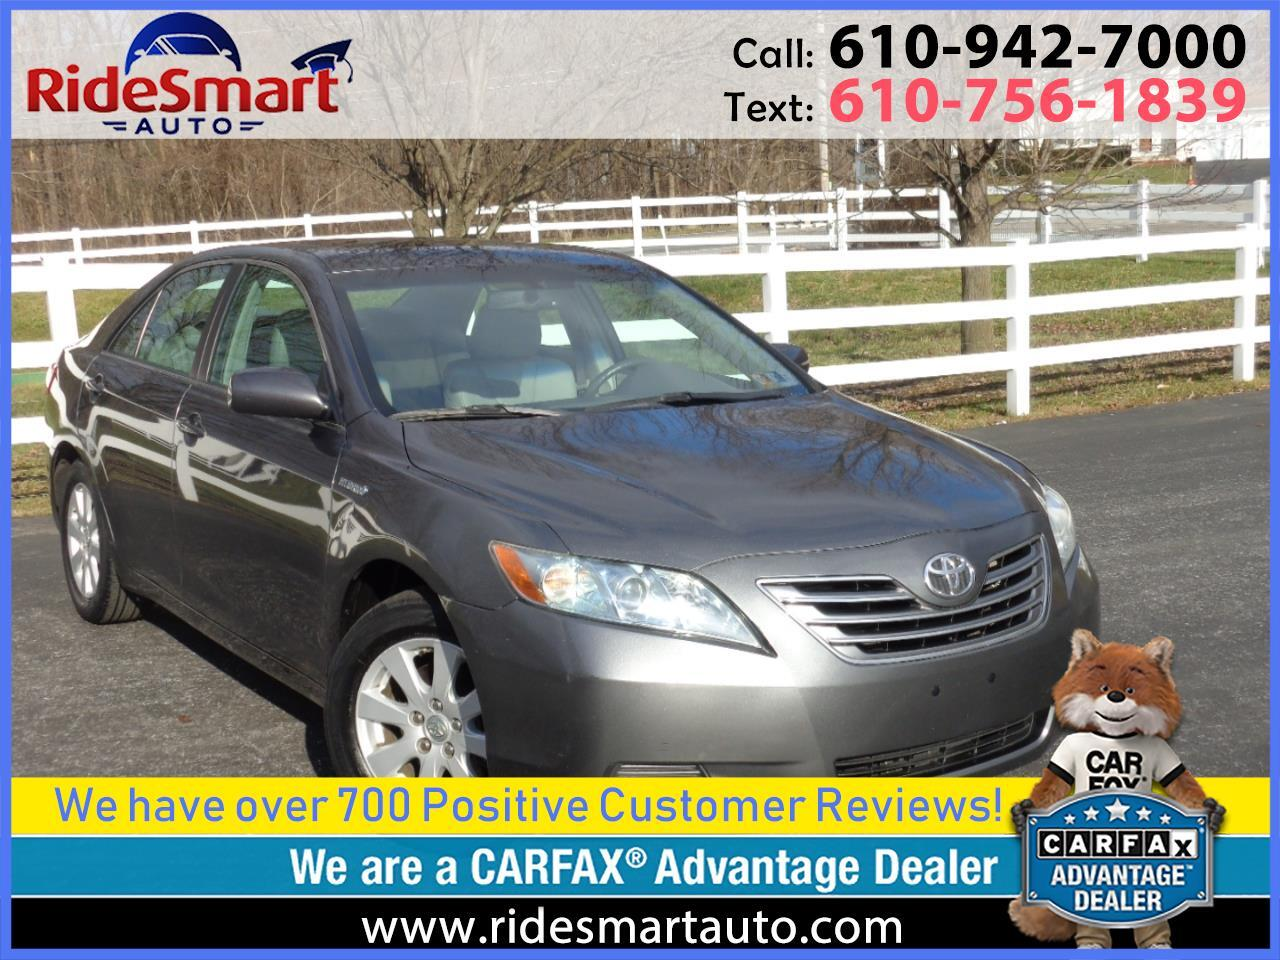 2009 Toyota Camry Hybrid Sedan Luxury Edition